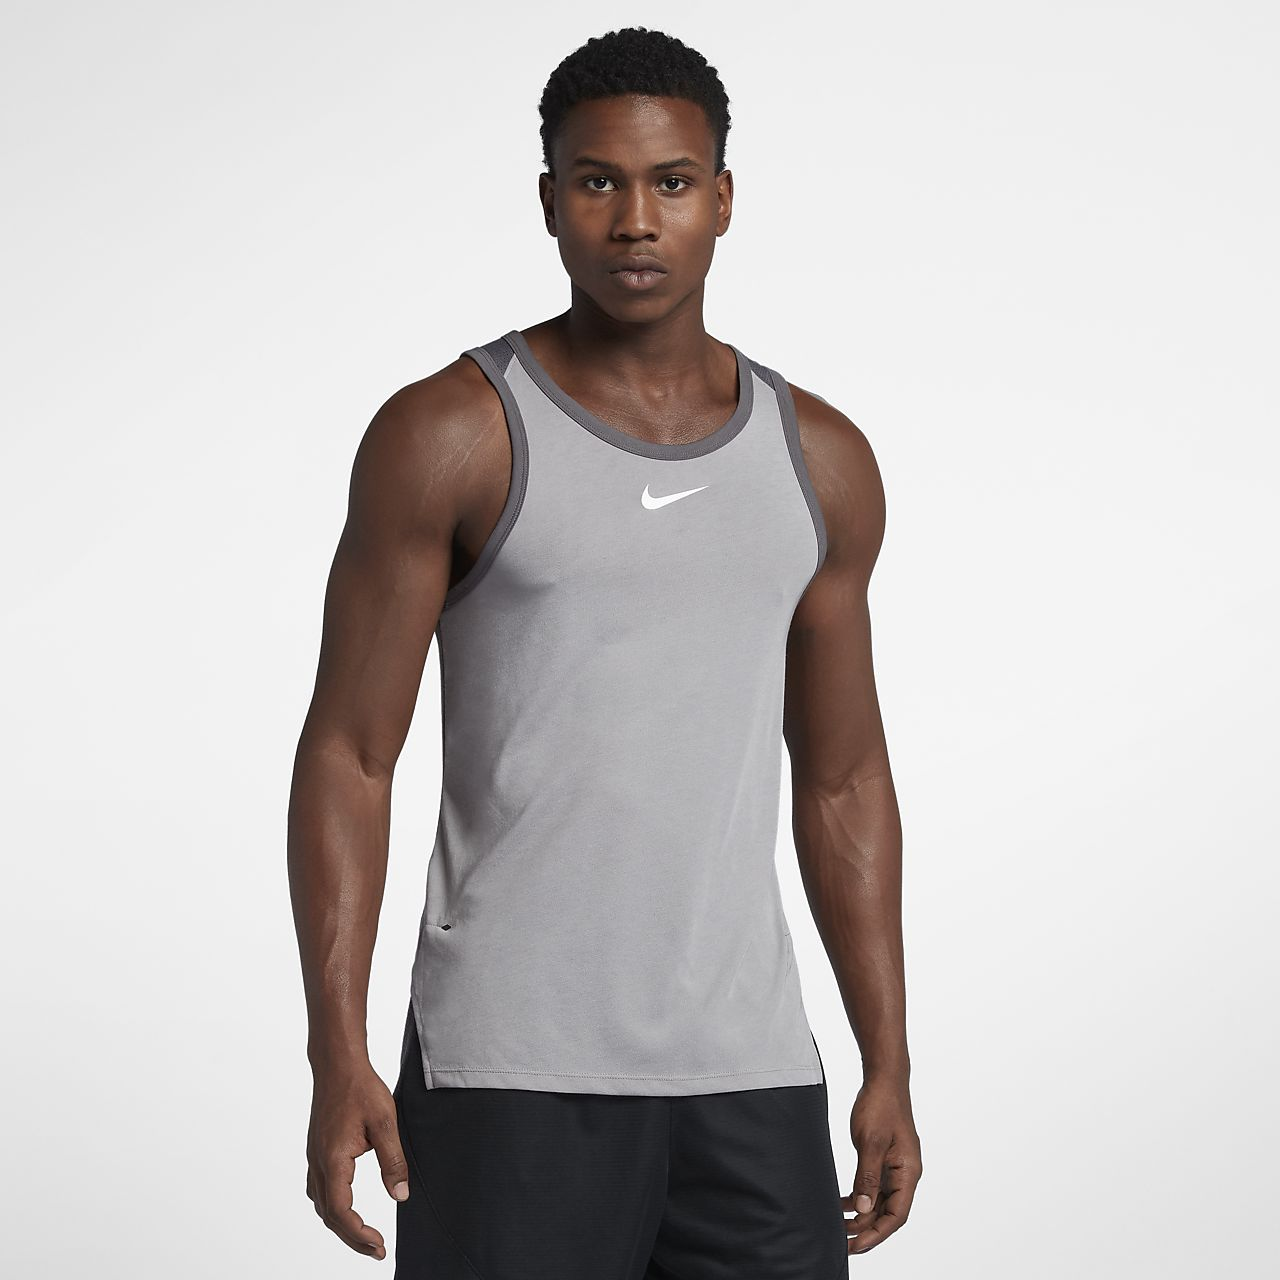 Nike Breathe Elite Men's Sleeveless Basketball Top